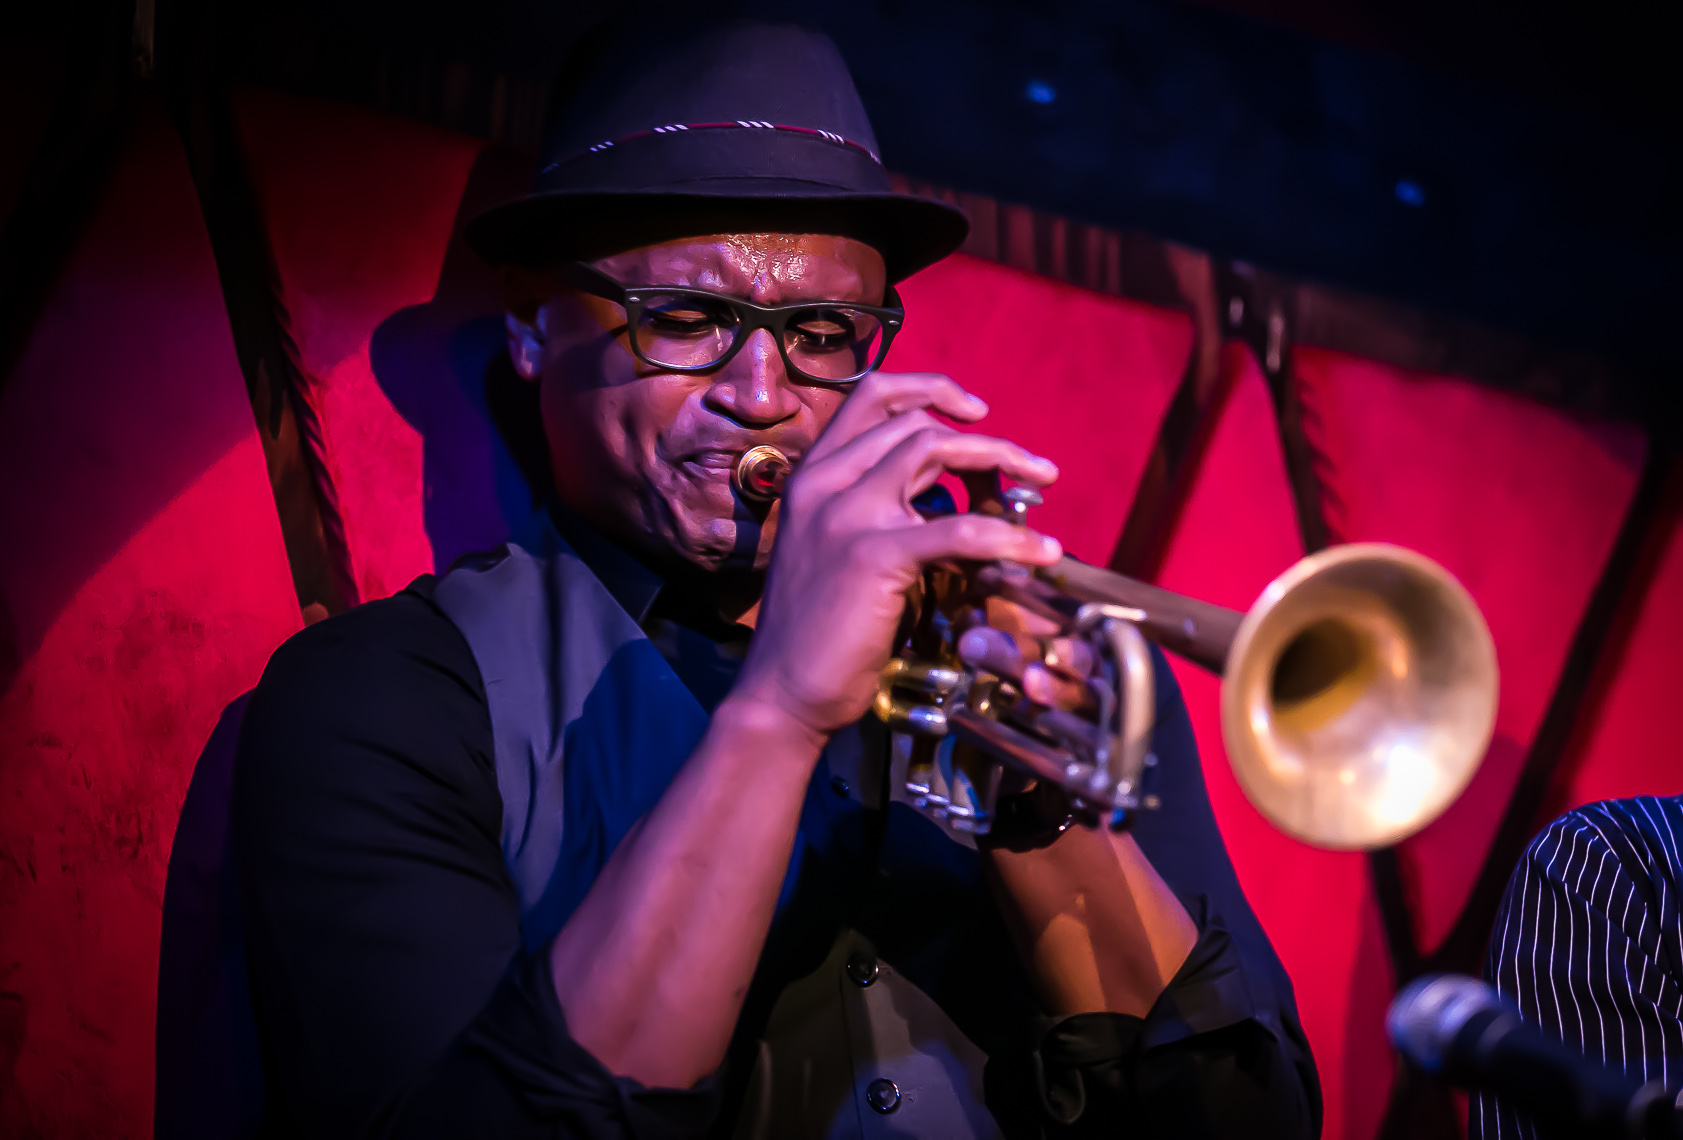 Jazz musician Bruce Harris on trumpet by music photographer Deborah Lowery